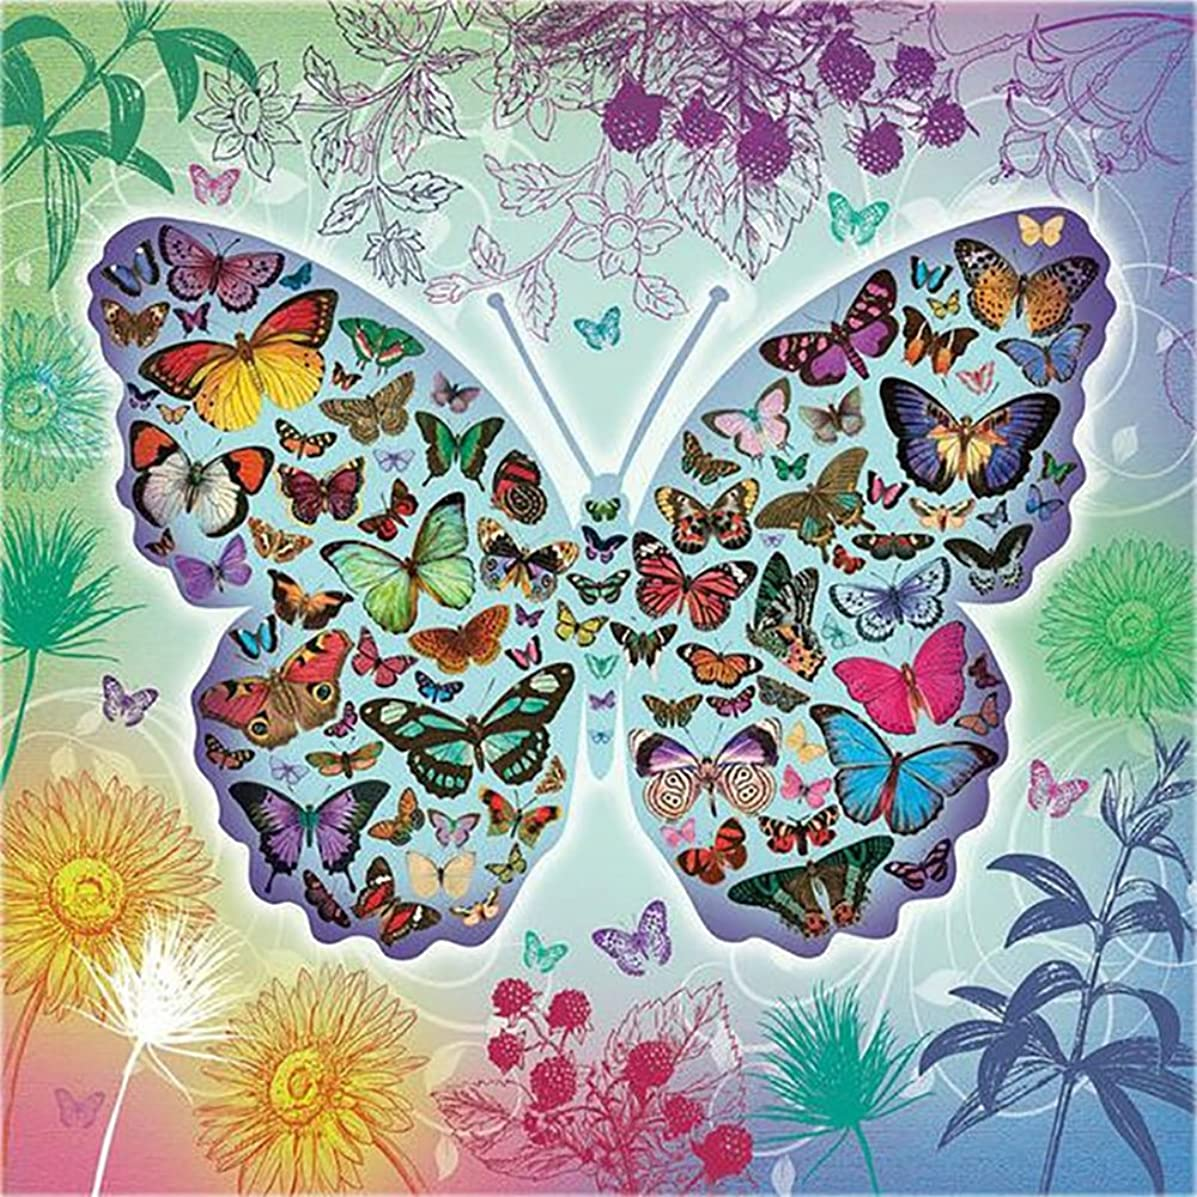 Mobicus Blxecky 5D DIY Diamond Painting,by Number Kits Crafts & Sewing Cross Stitch,Wall Stickers for Living Room Decoration,Butterfly(35X35CM/14X14inch)